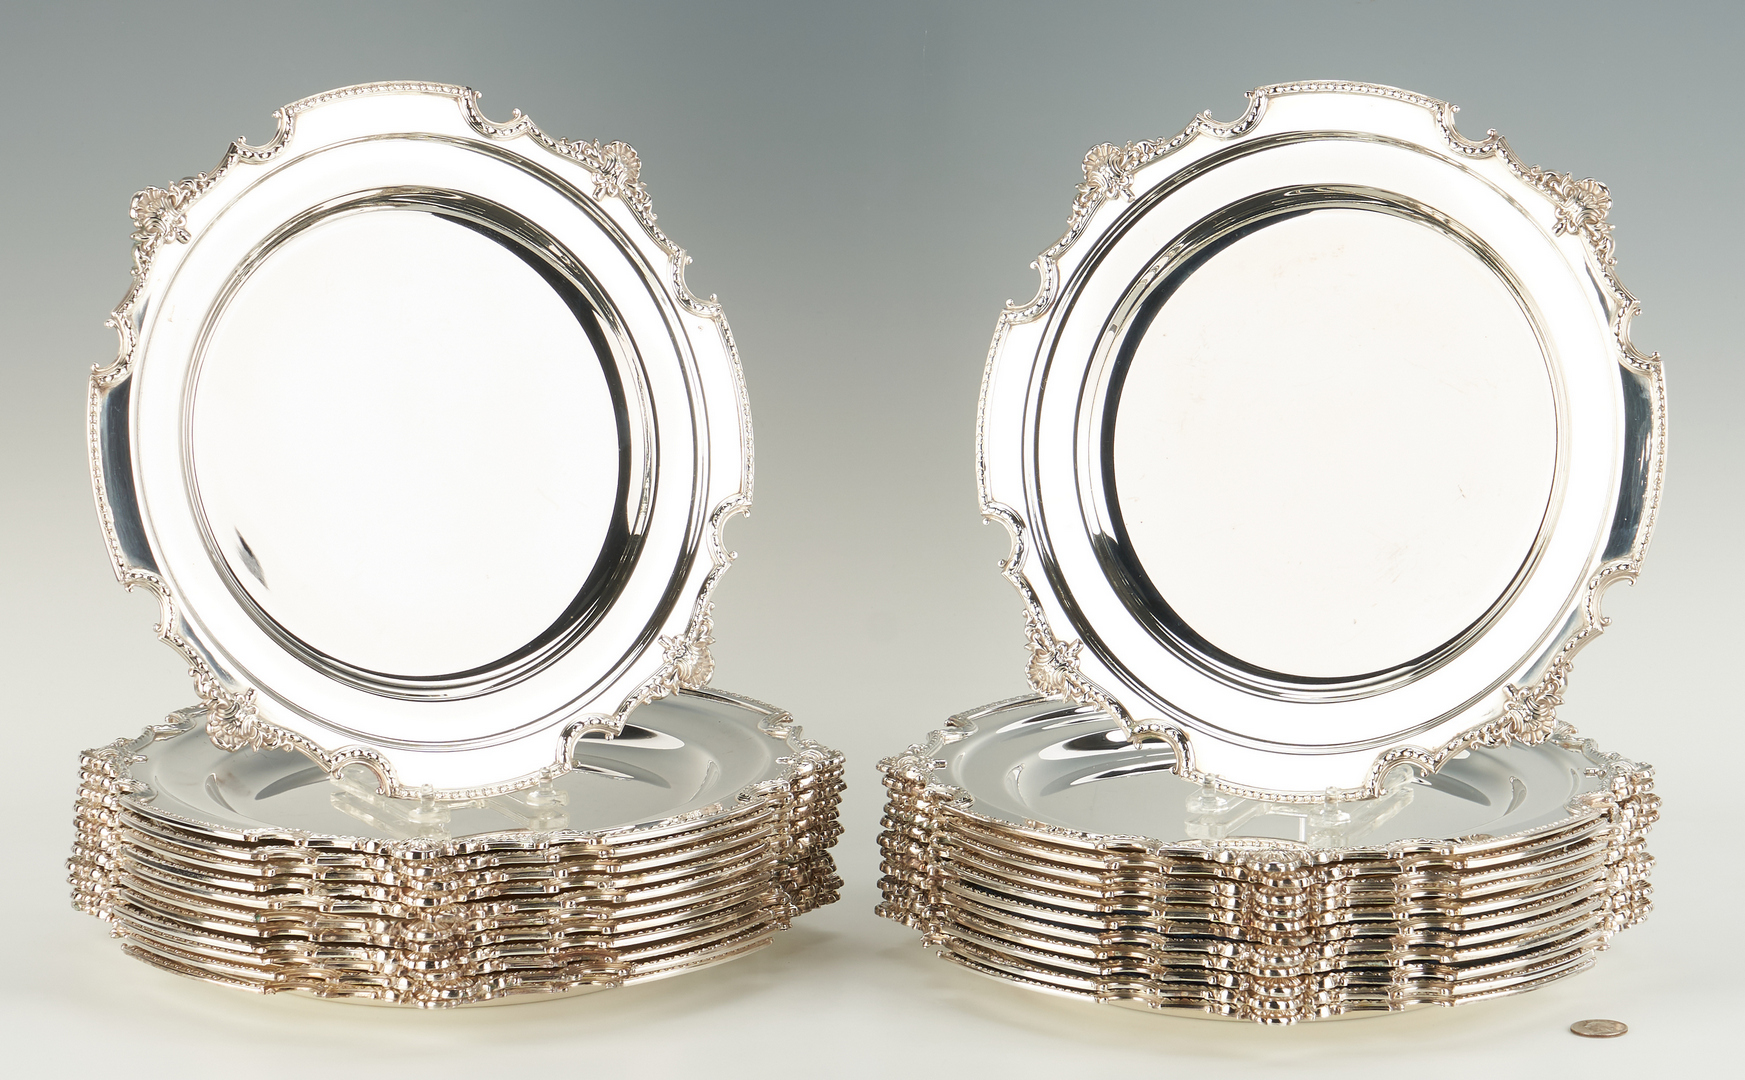 Lot 946: 24 Silverplated English Chargers